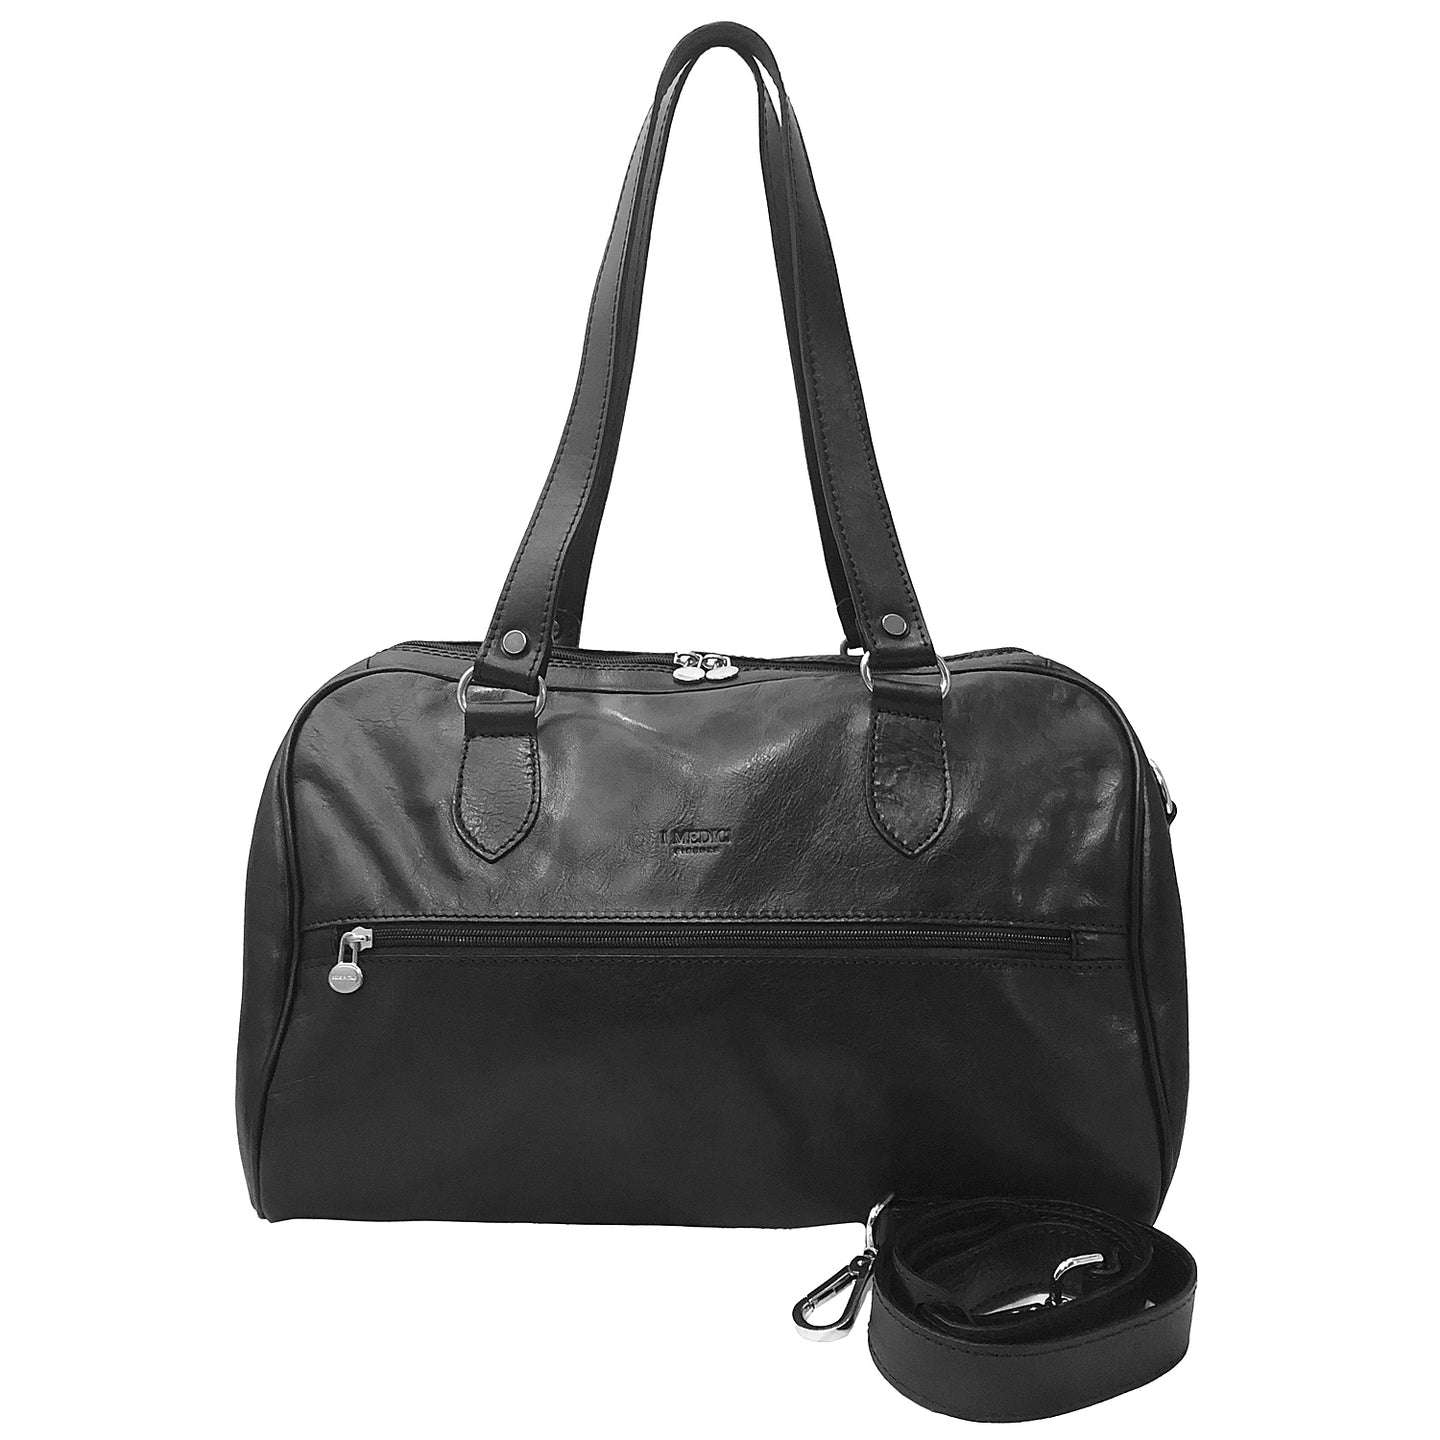 I Medici Leather Duffel Italian Handbag